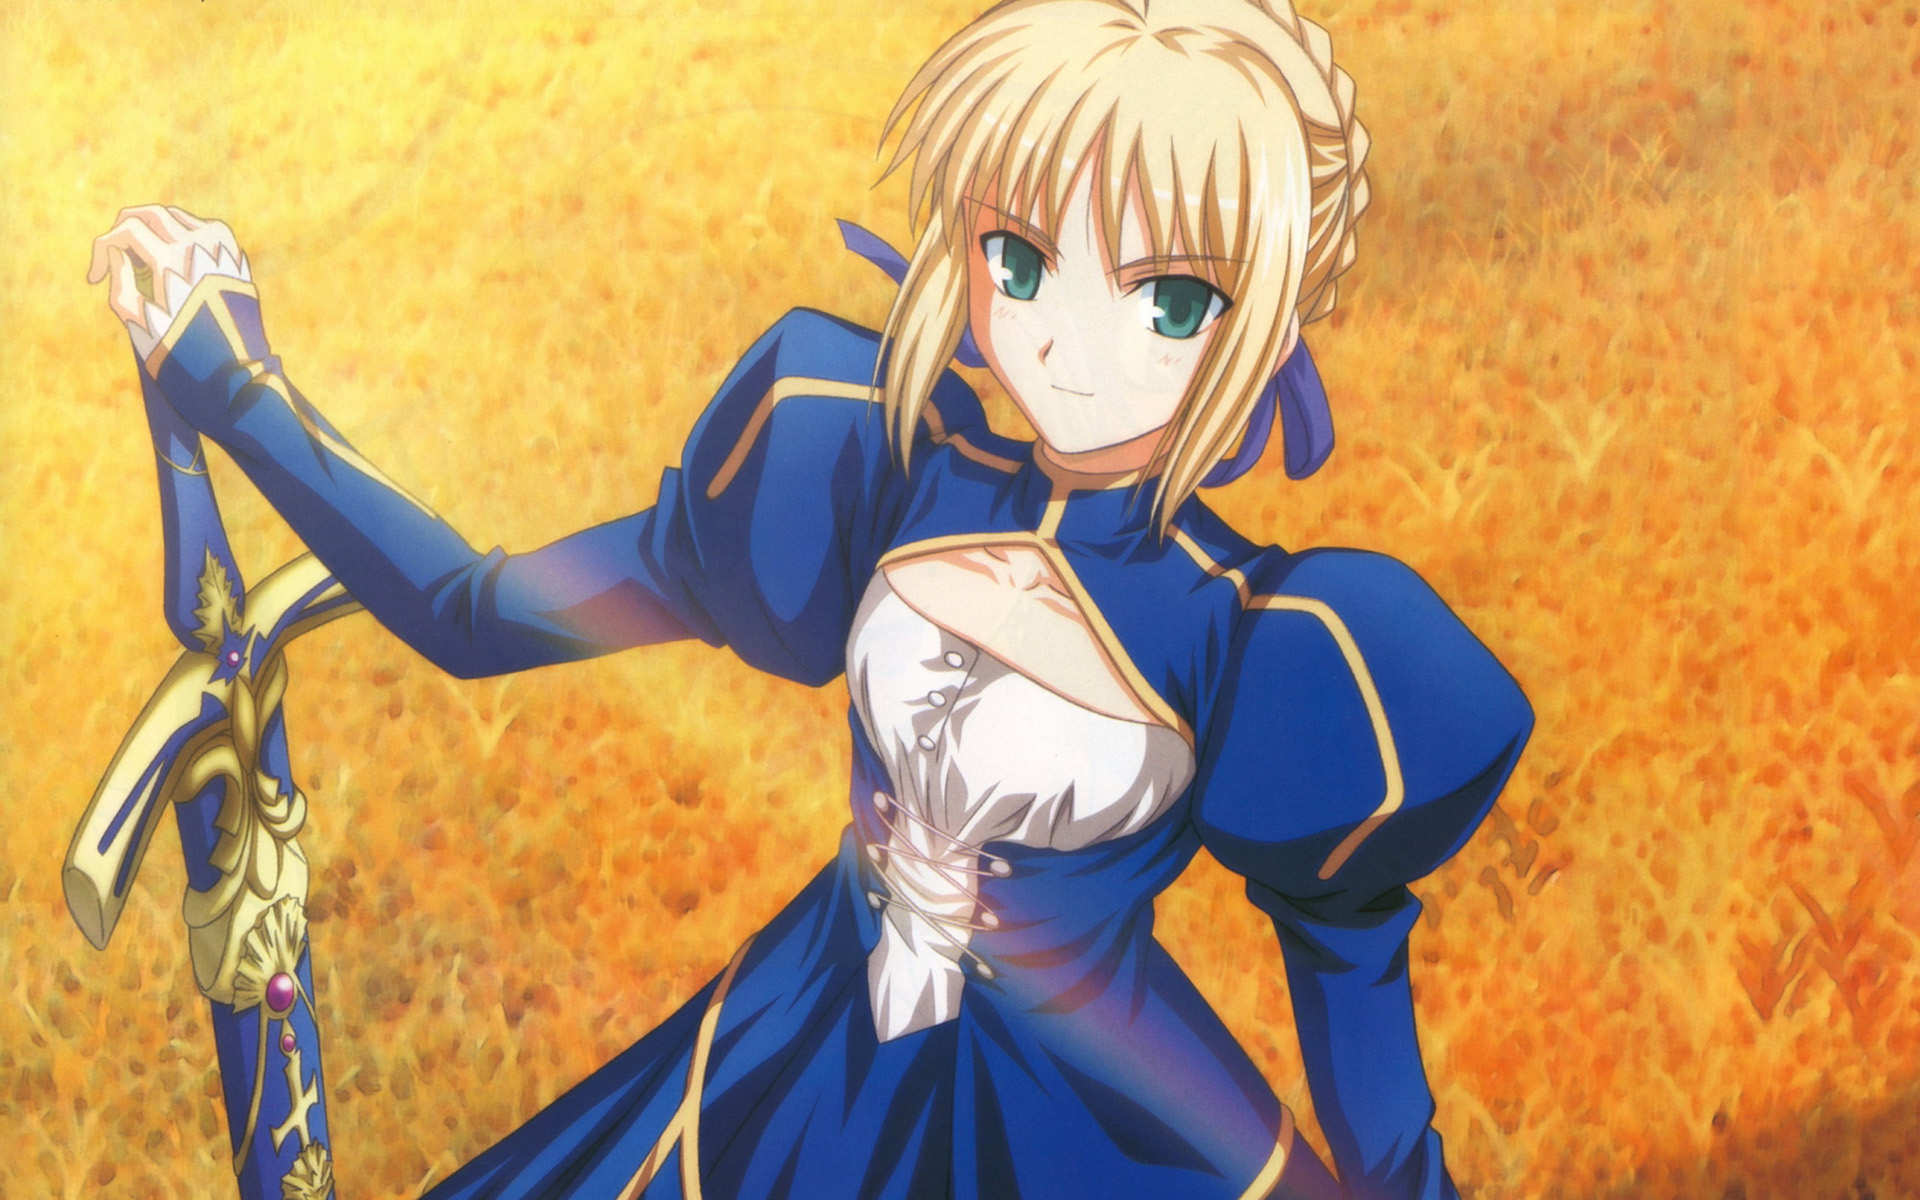 Fate Stay Night Saber Series Anime Manga Characters